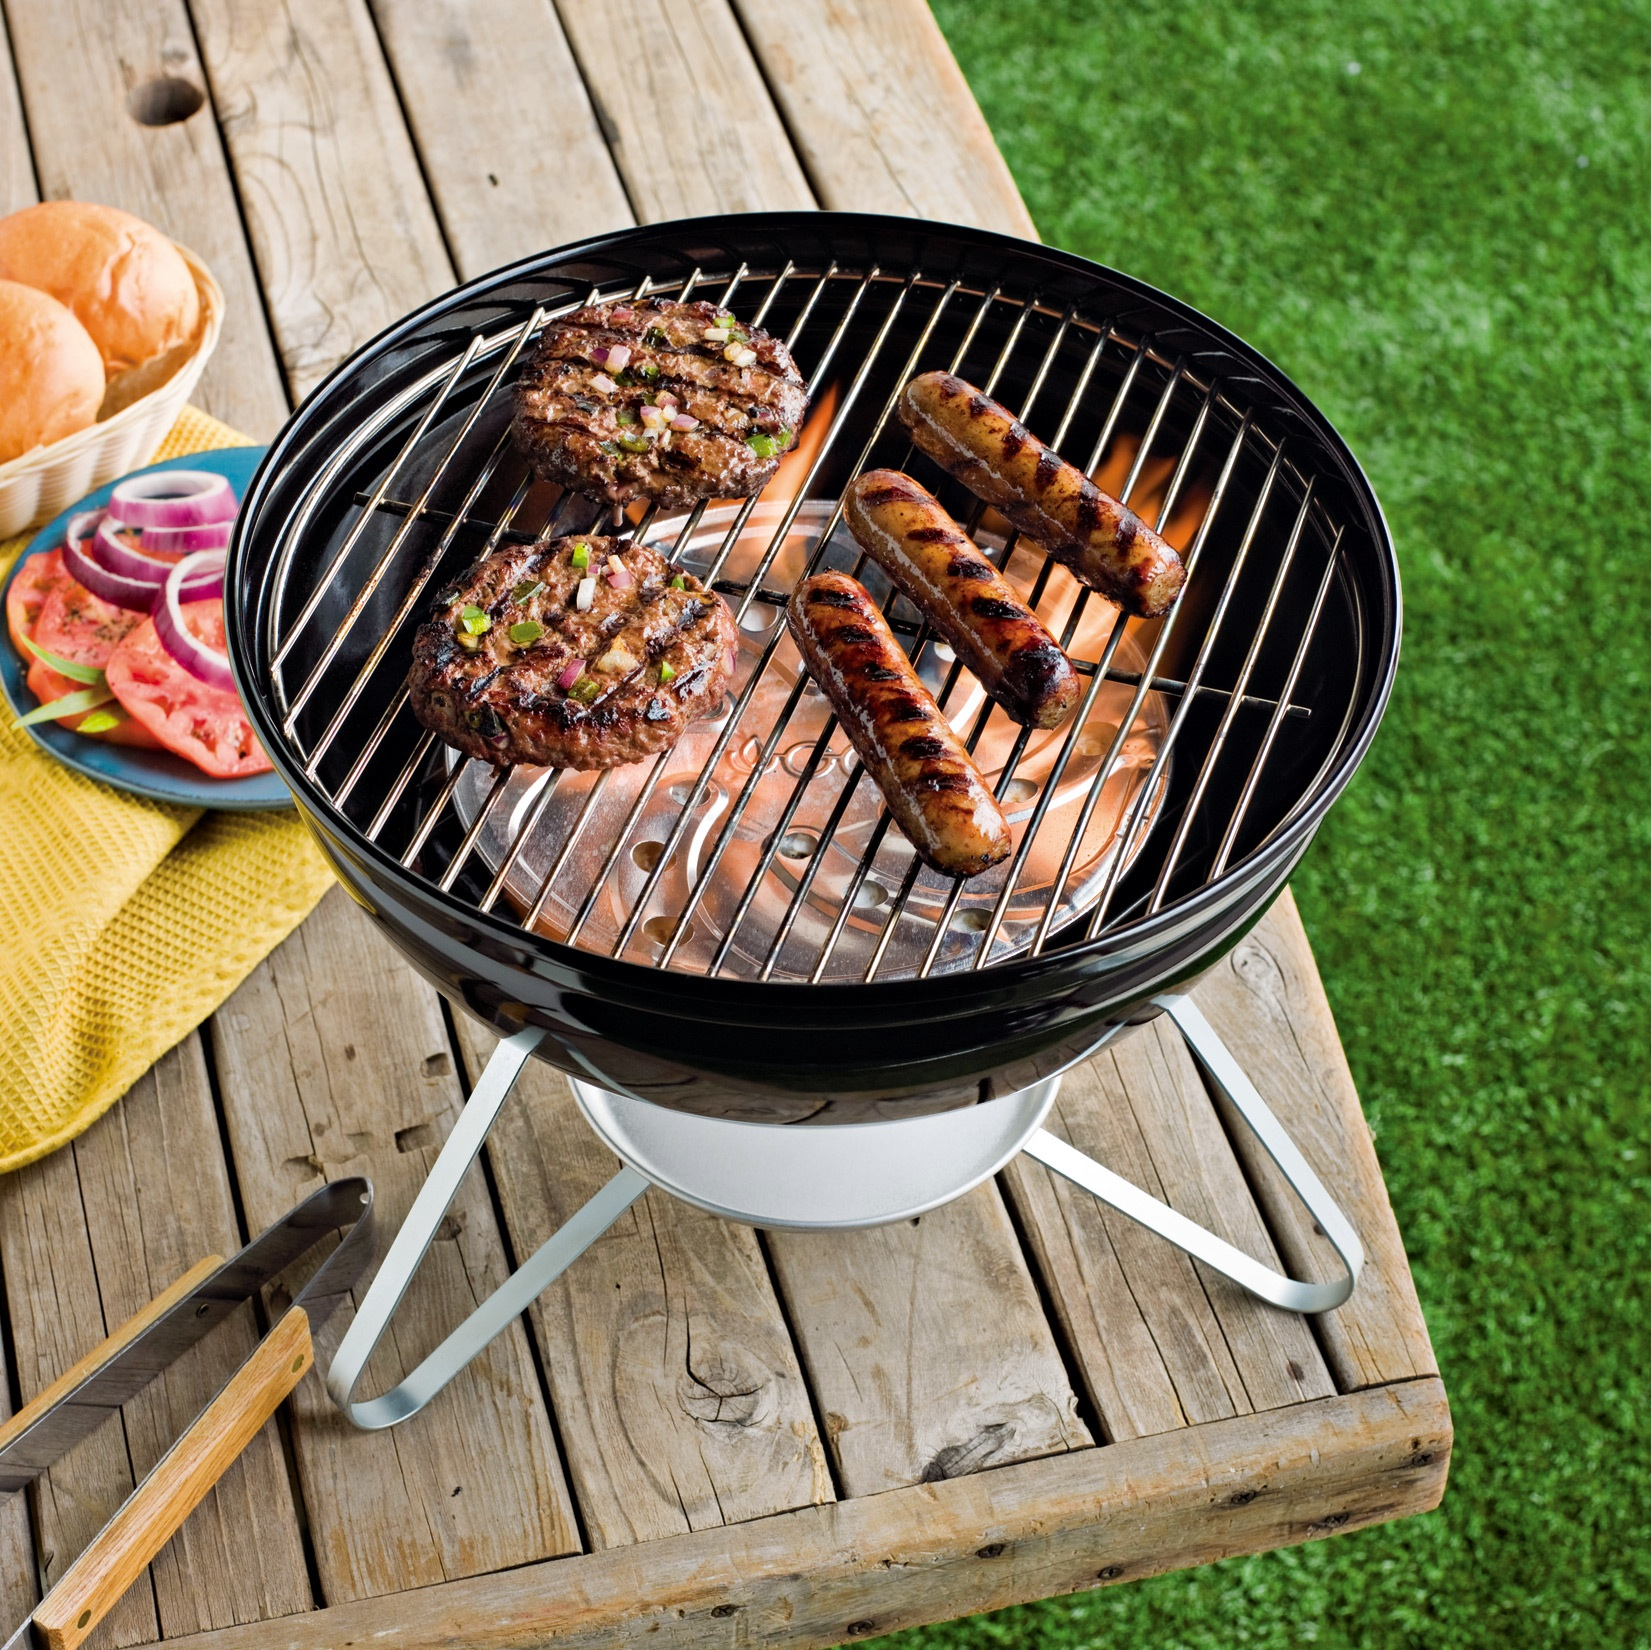 The FlameDisk Charcoal (grilling) Alternative is fueled by solid ethanol